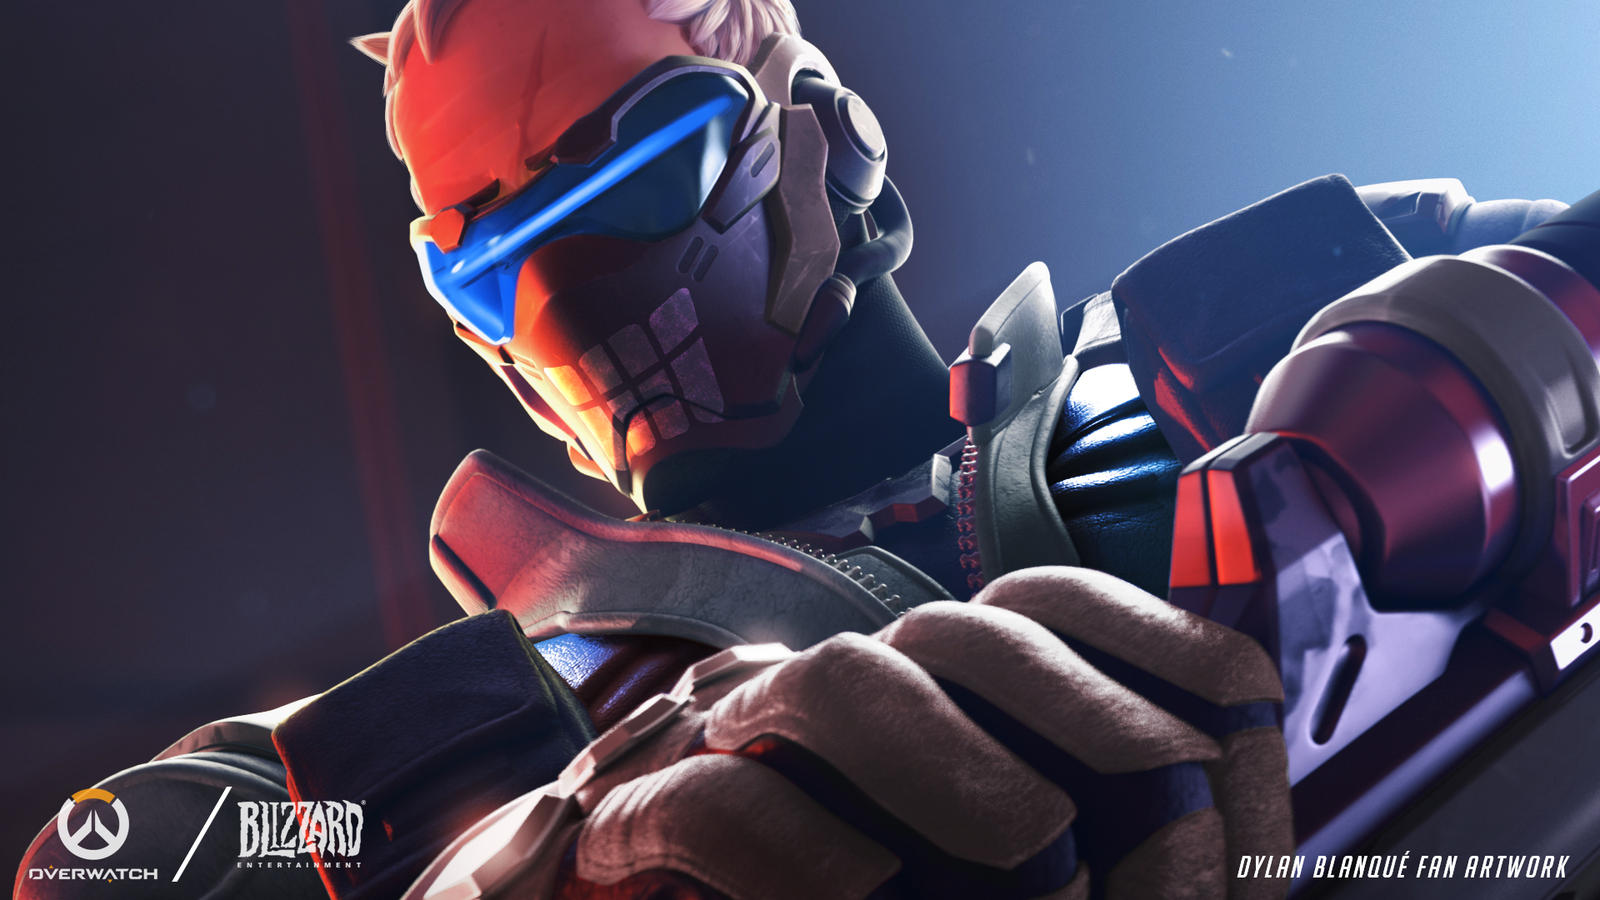 soldier 76 wallpaper - photo #21